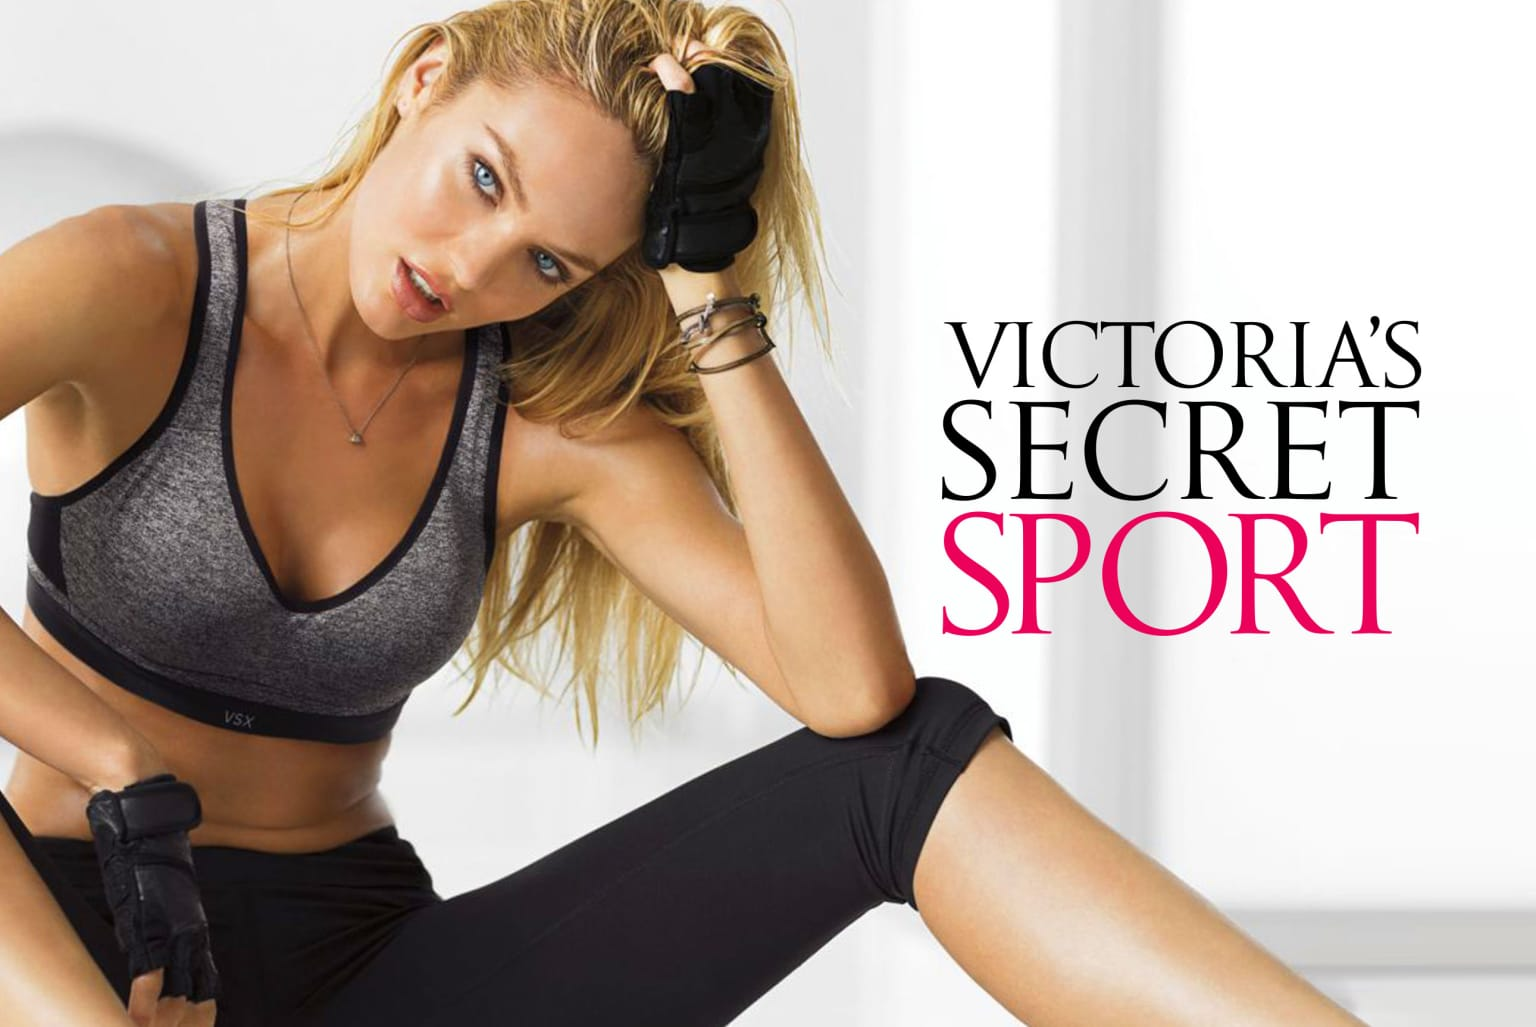 Victoria's Secret Sport Marketing